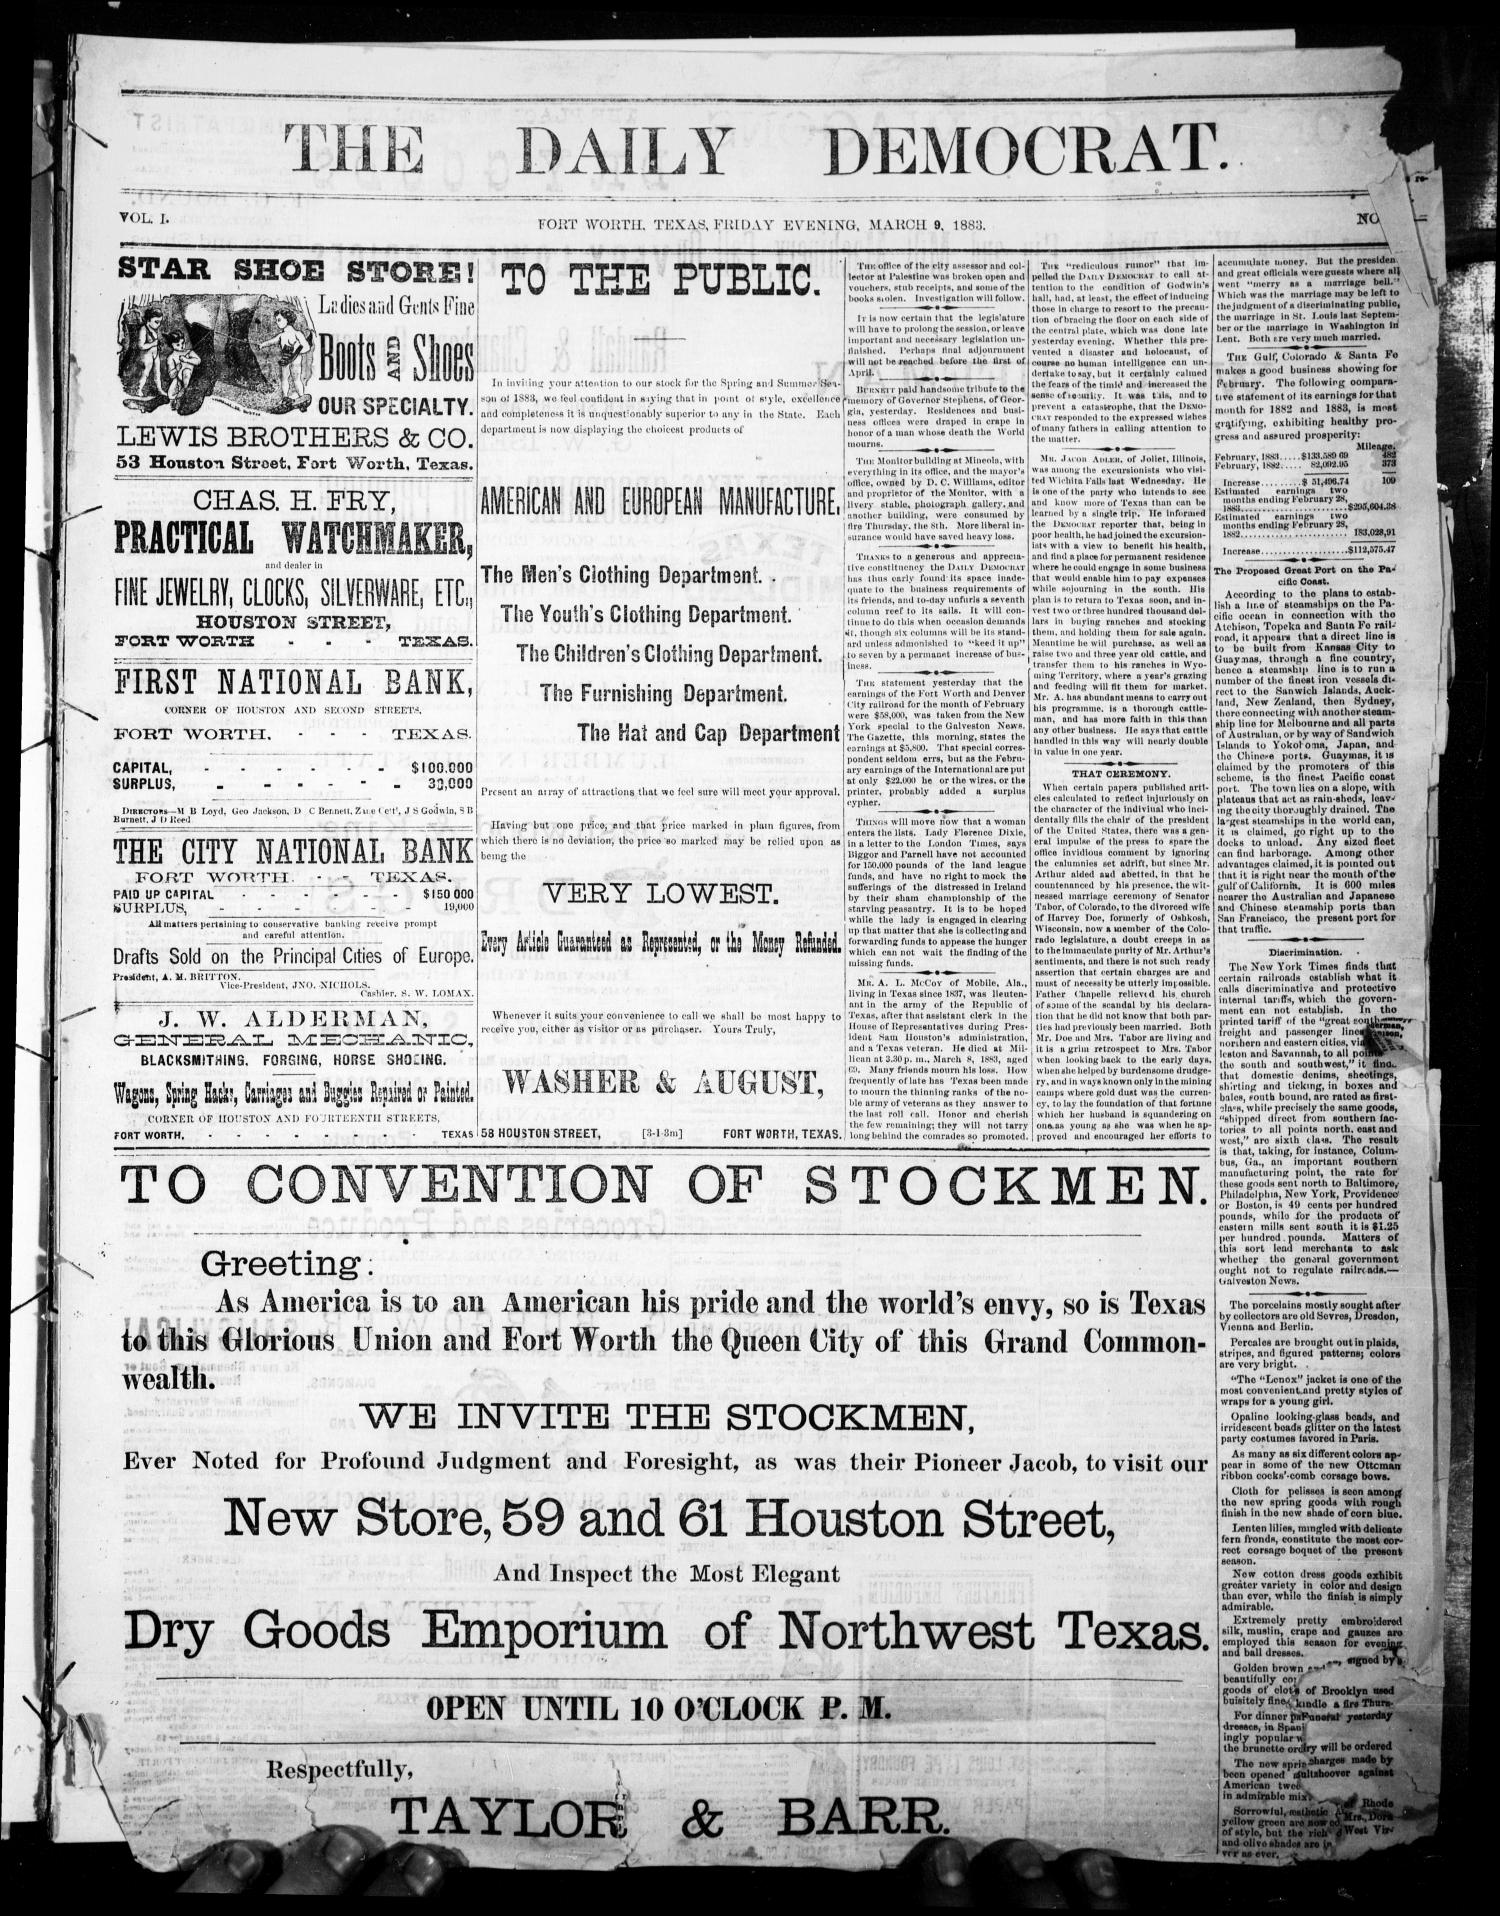 The Daily Democrat. (Fort Worth, Tex.), Vol. 1, No. [99], Ed. 1 Friday, March 9, 1883                                                                                                      [Sequence #]: 1 of 4